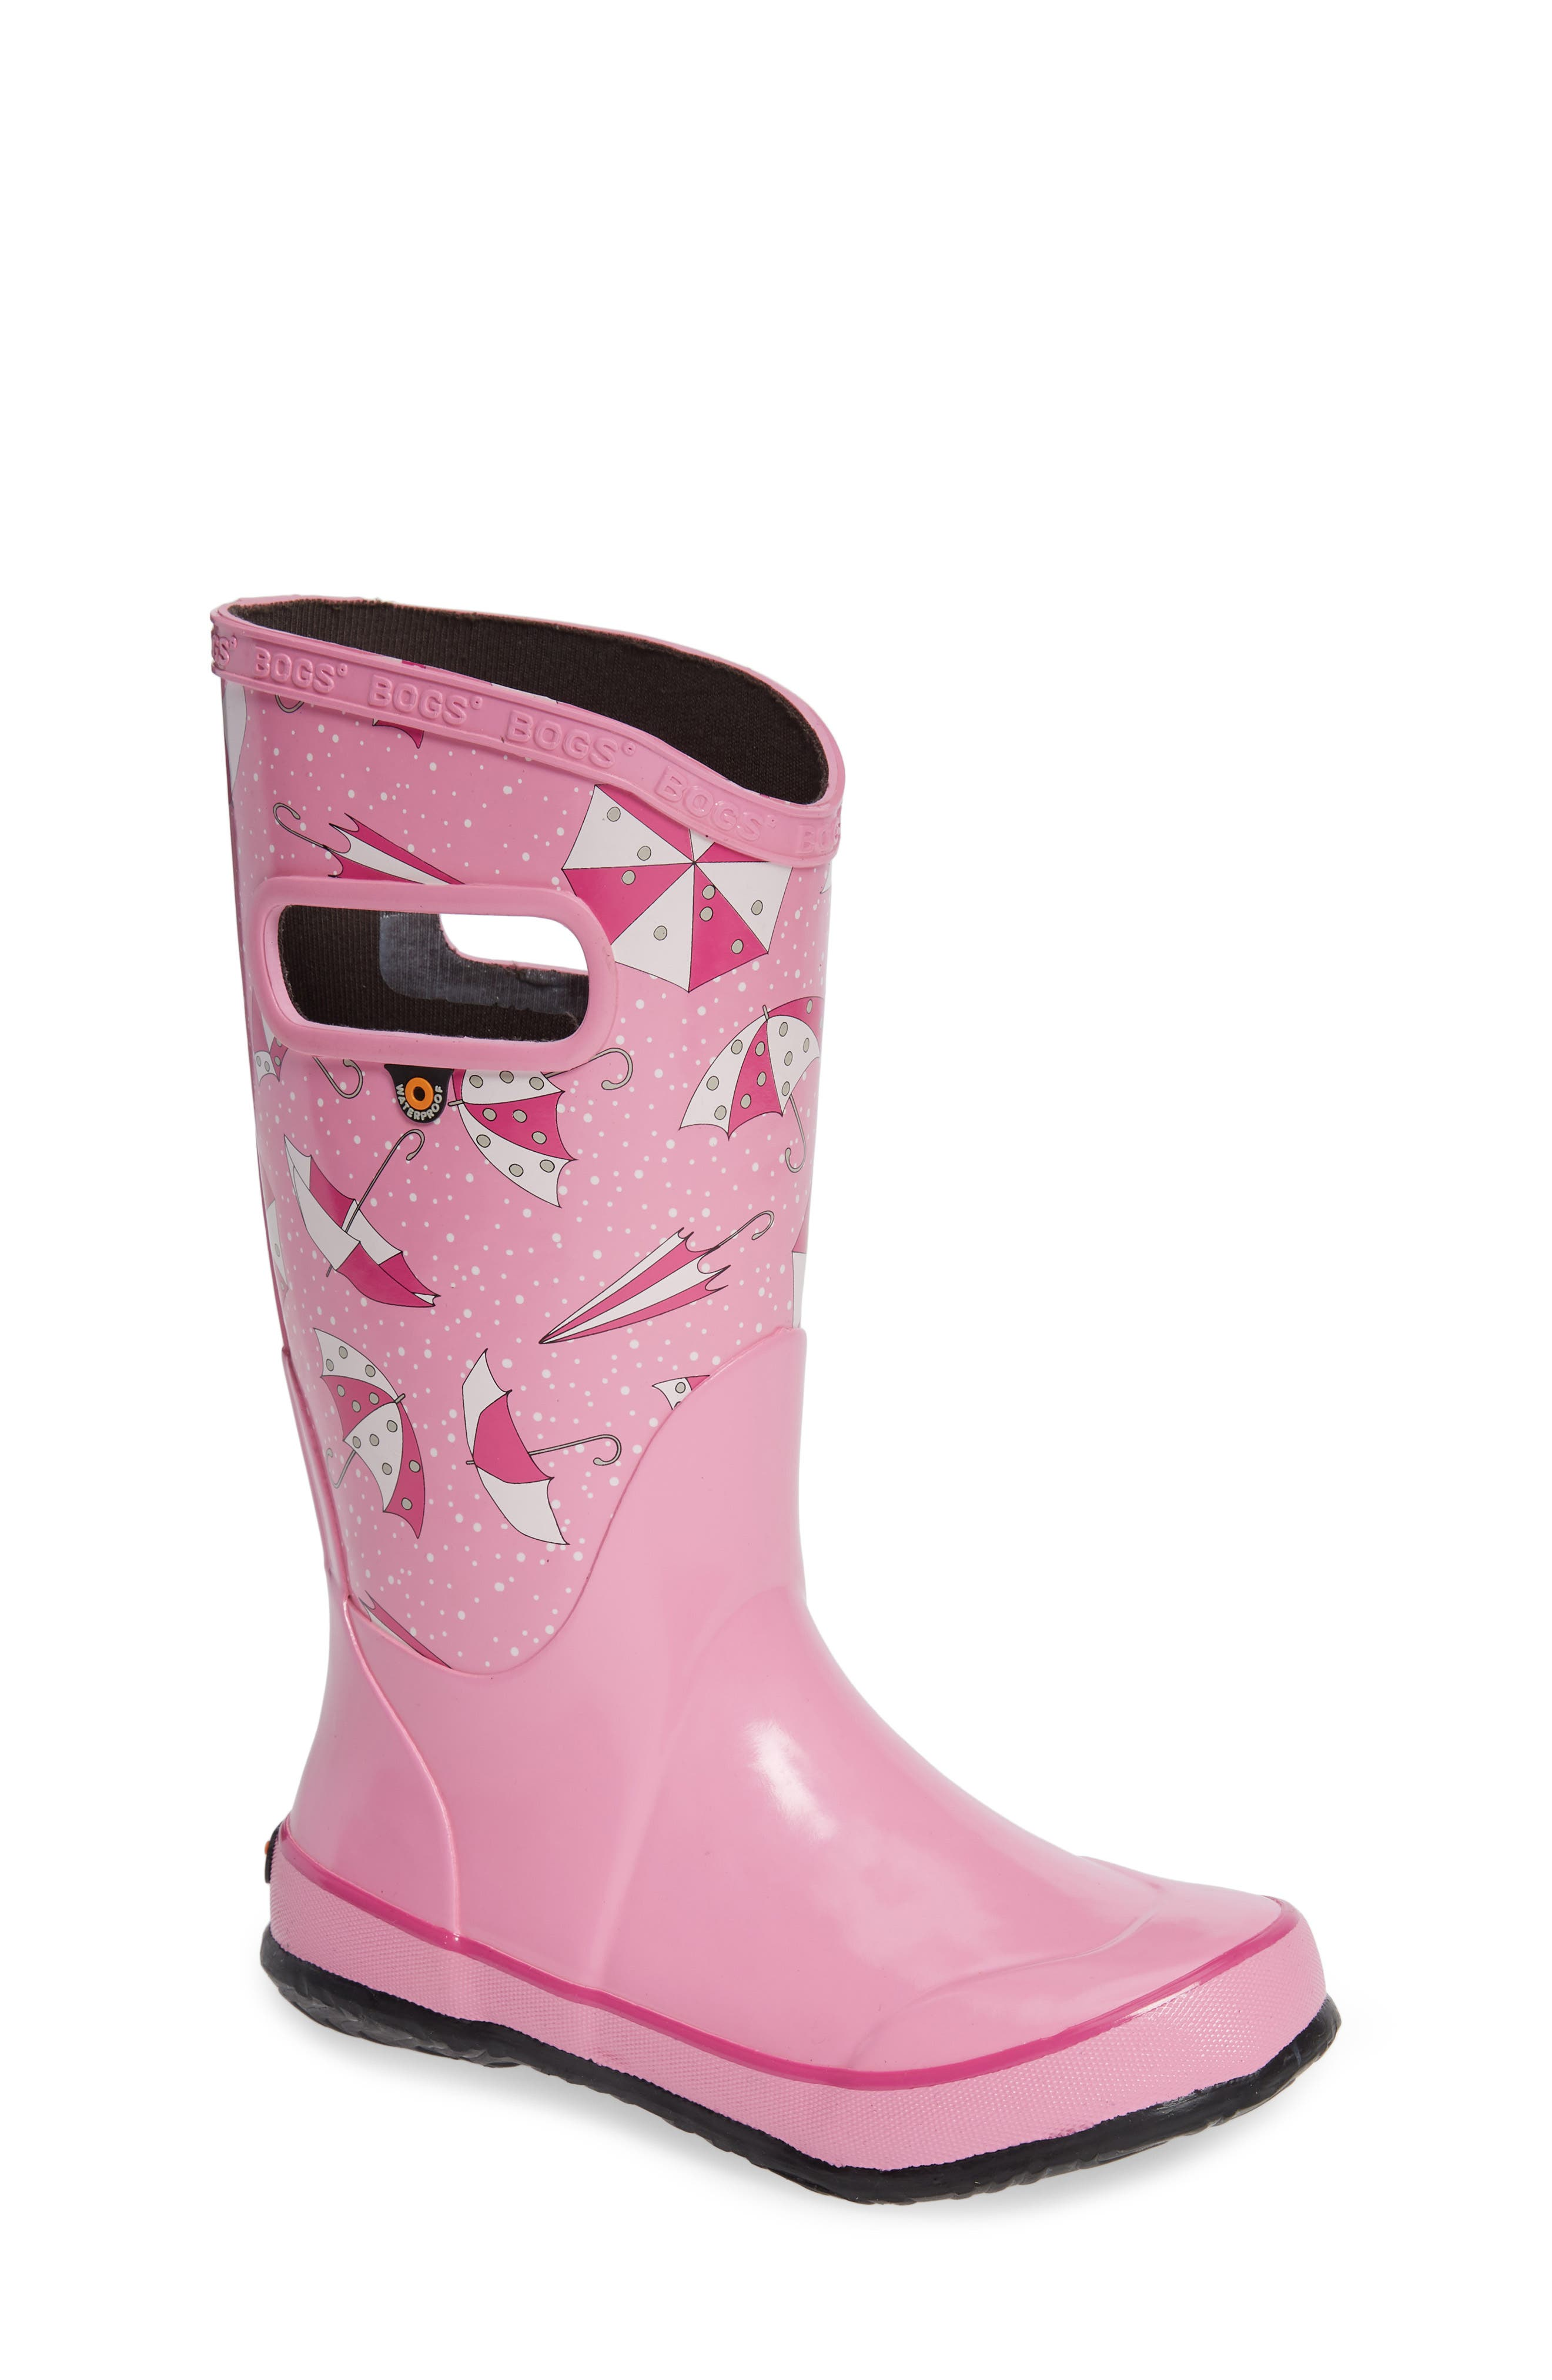 Umbrellas Waterproof Rubber Rain Boot,                         Main,                         color, Pink Multi